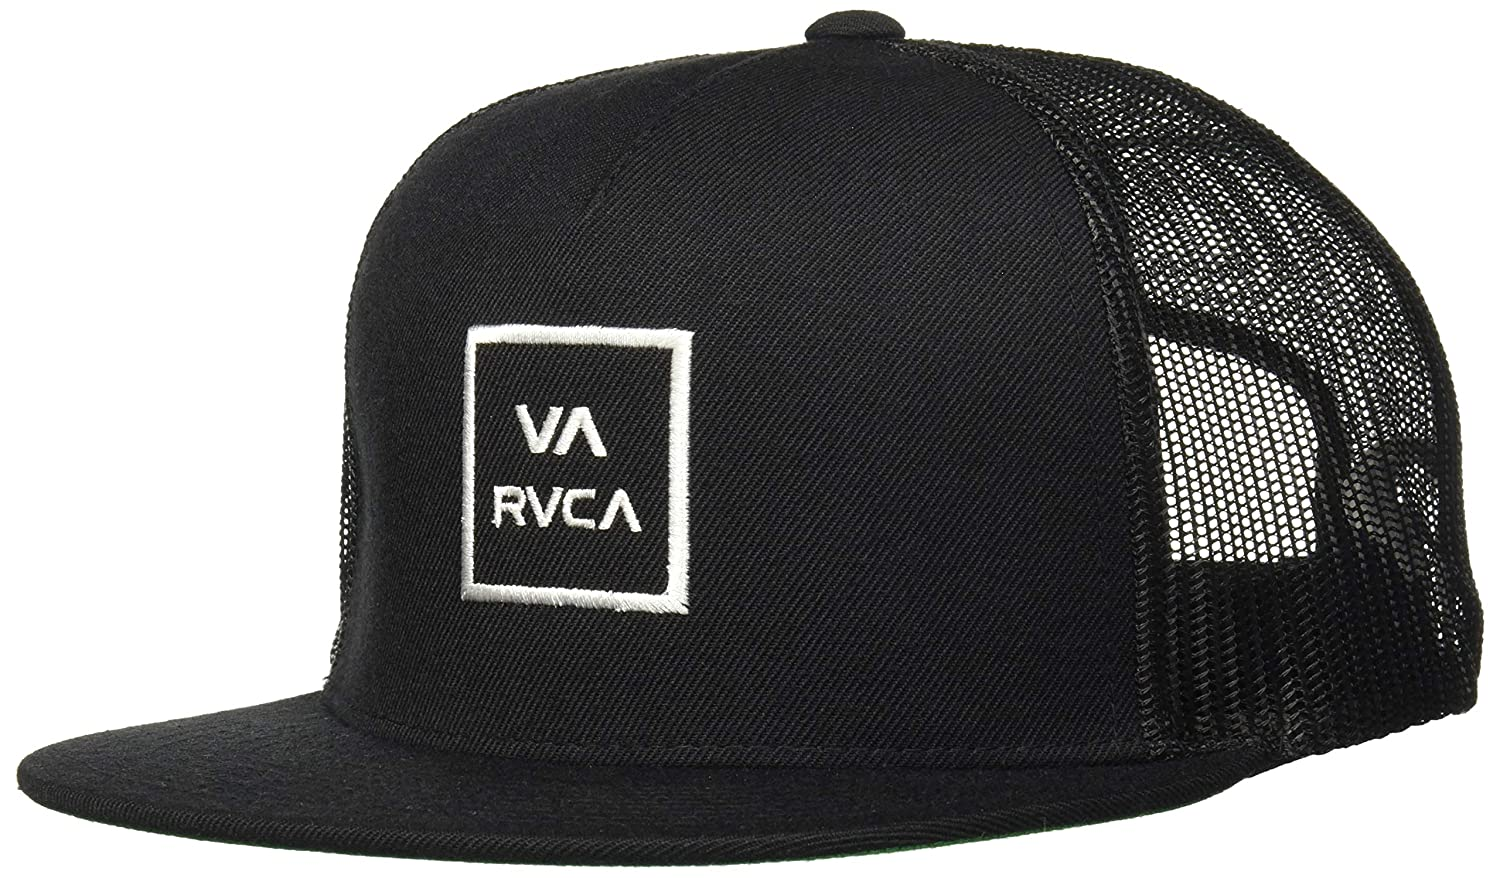 c36eb3b2cf Amazon.com  RVCA Men s Va All The Way Mesh Back Trucker Hat